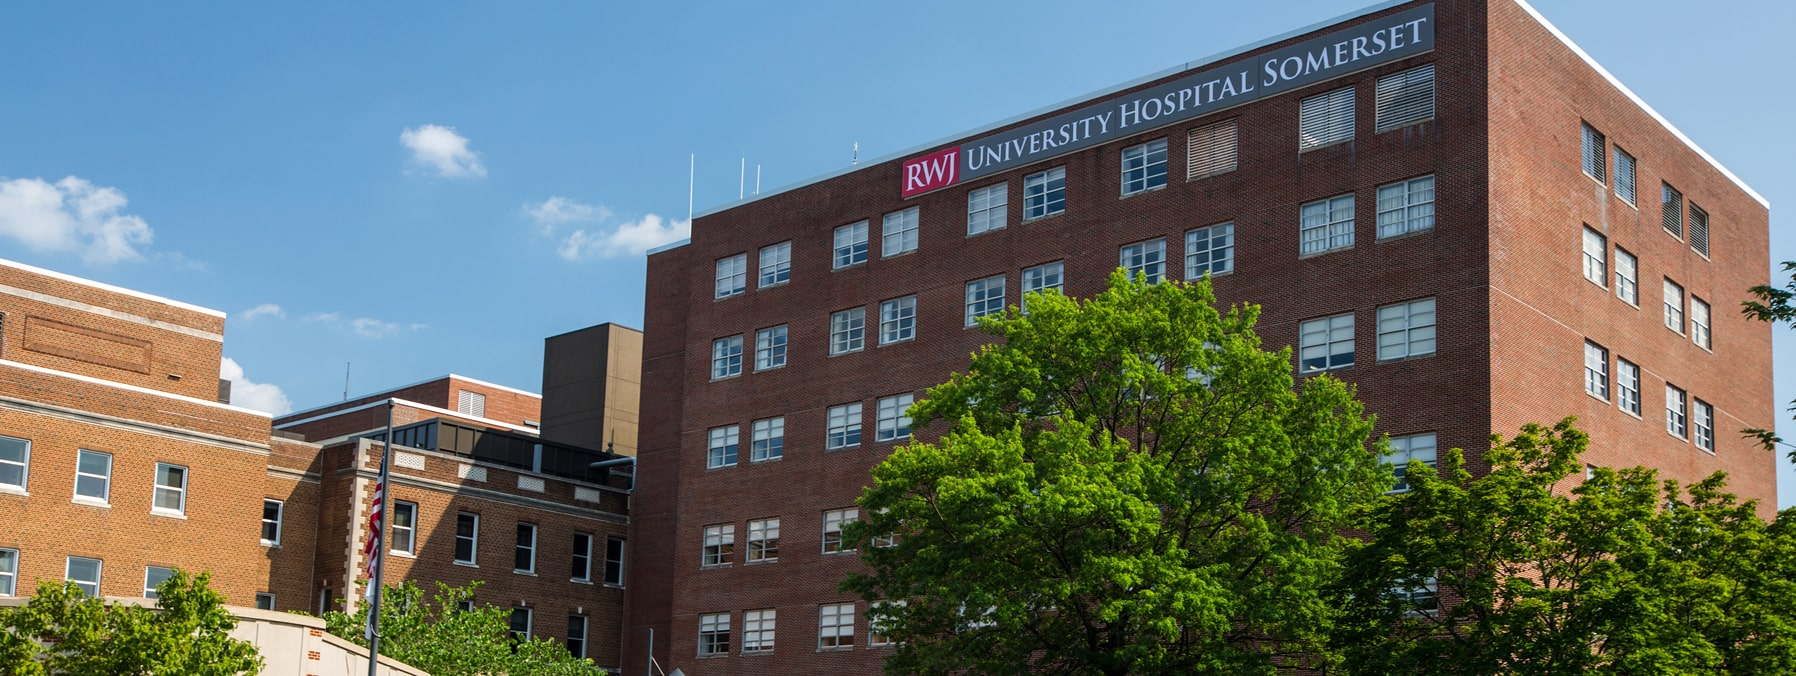 RWJ-University-Hospital-Somerset